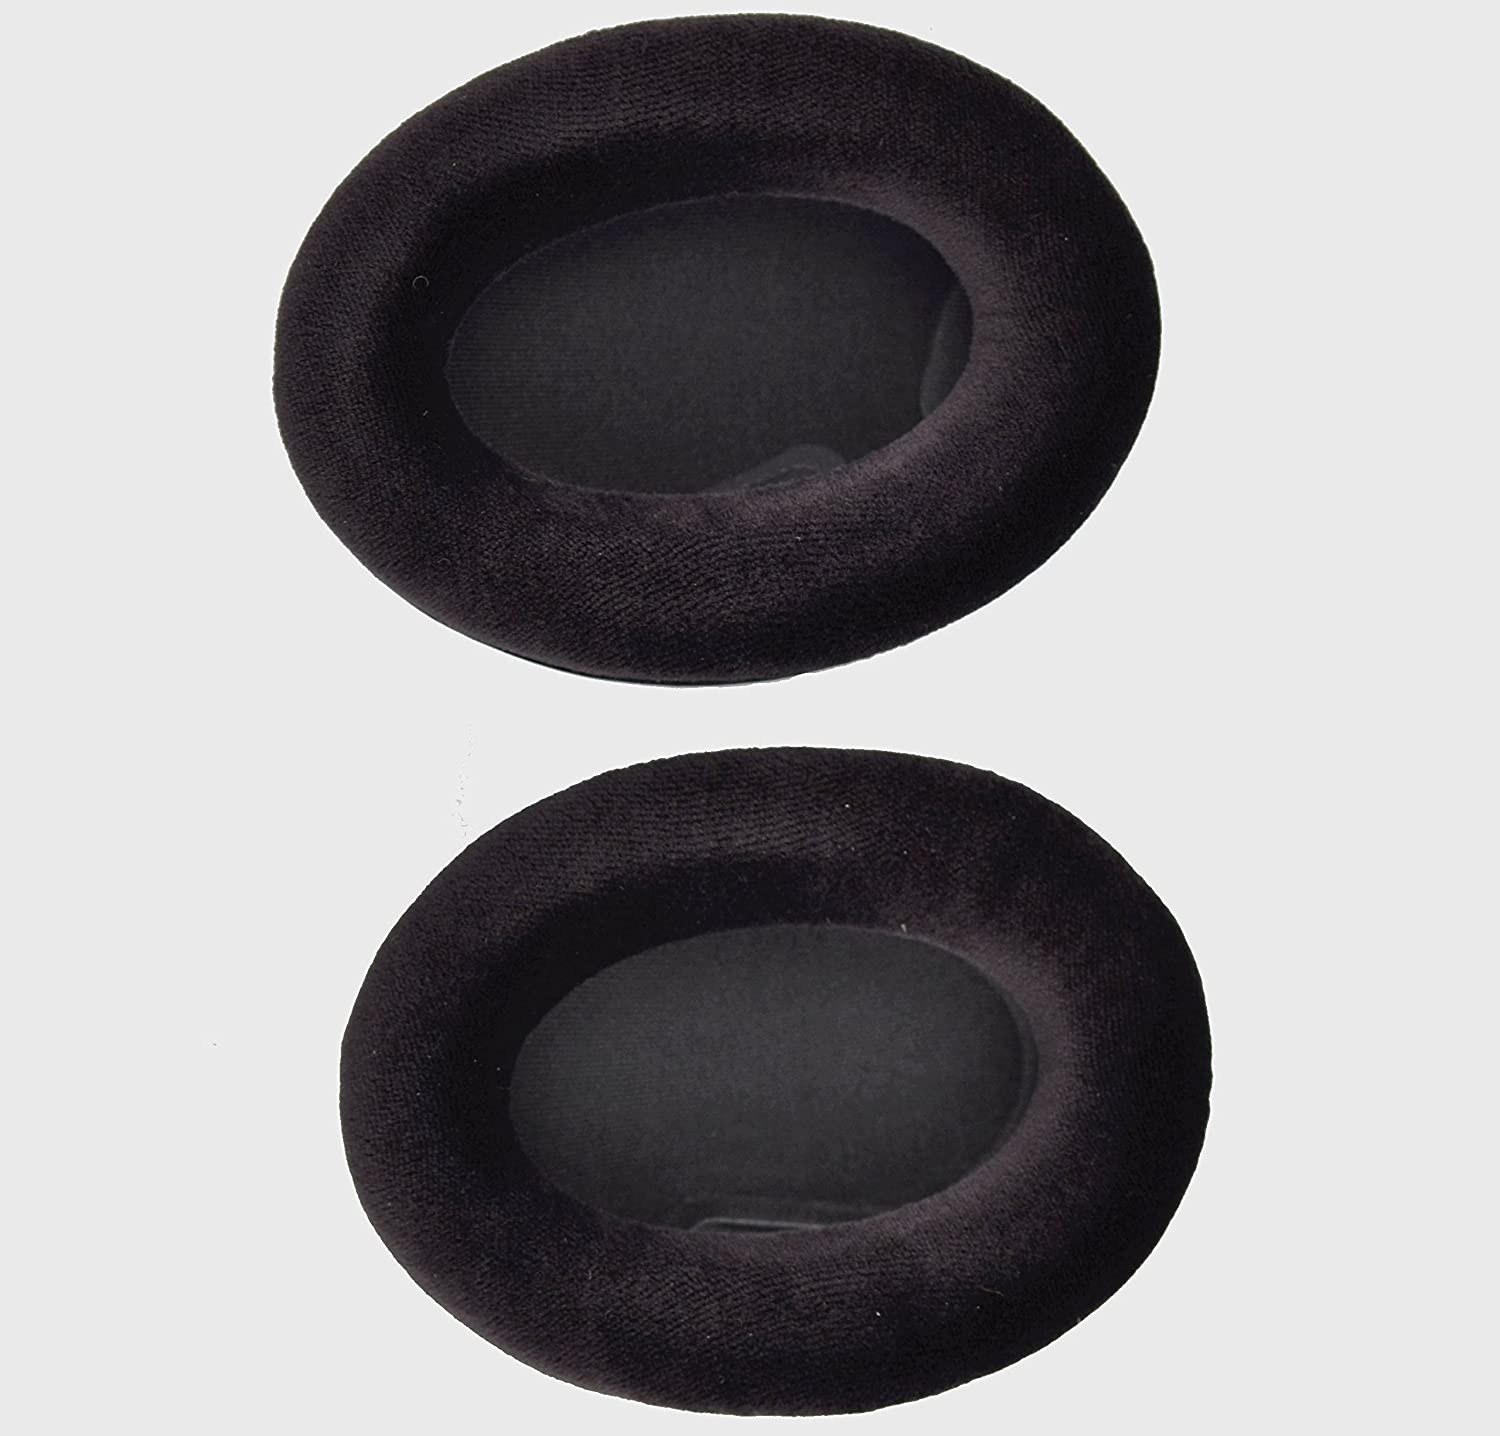 Genuine Replacement Ear Pads Cushions for SENNHEISER HD598 SE Black Special Edition Over-Ear Headphones - Black 4330153736